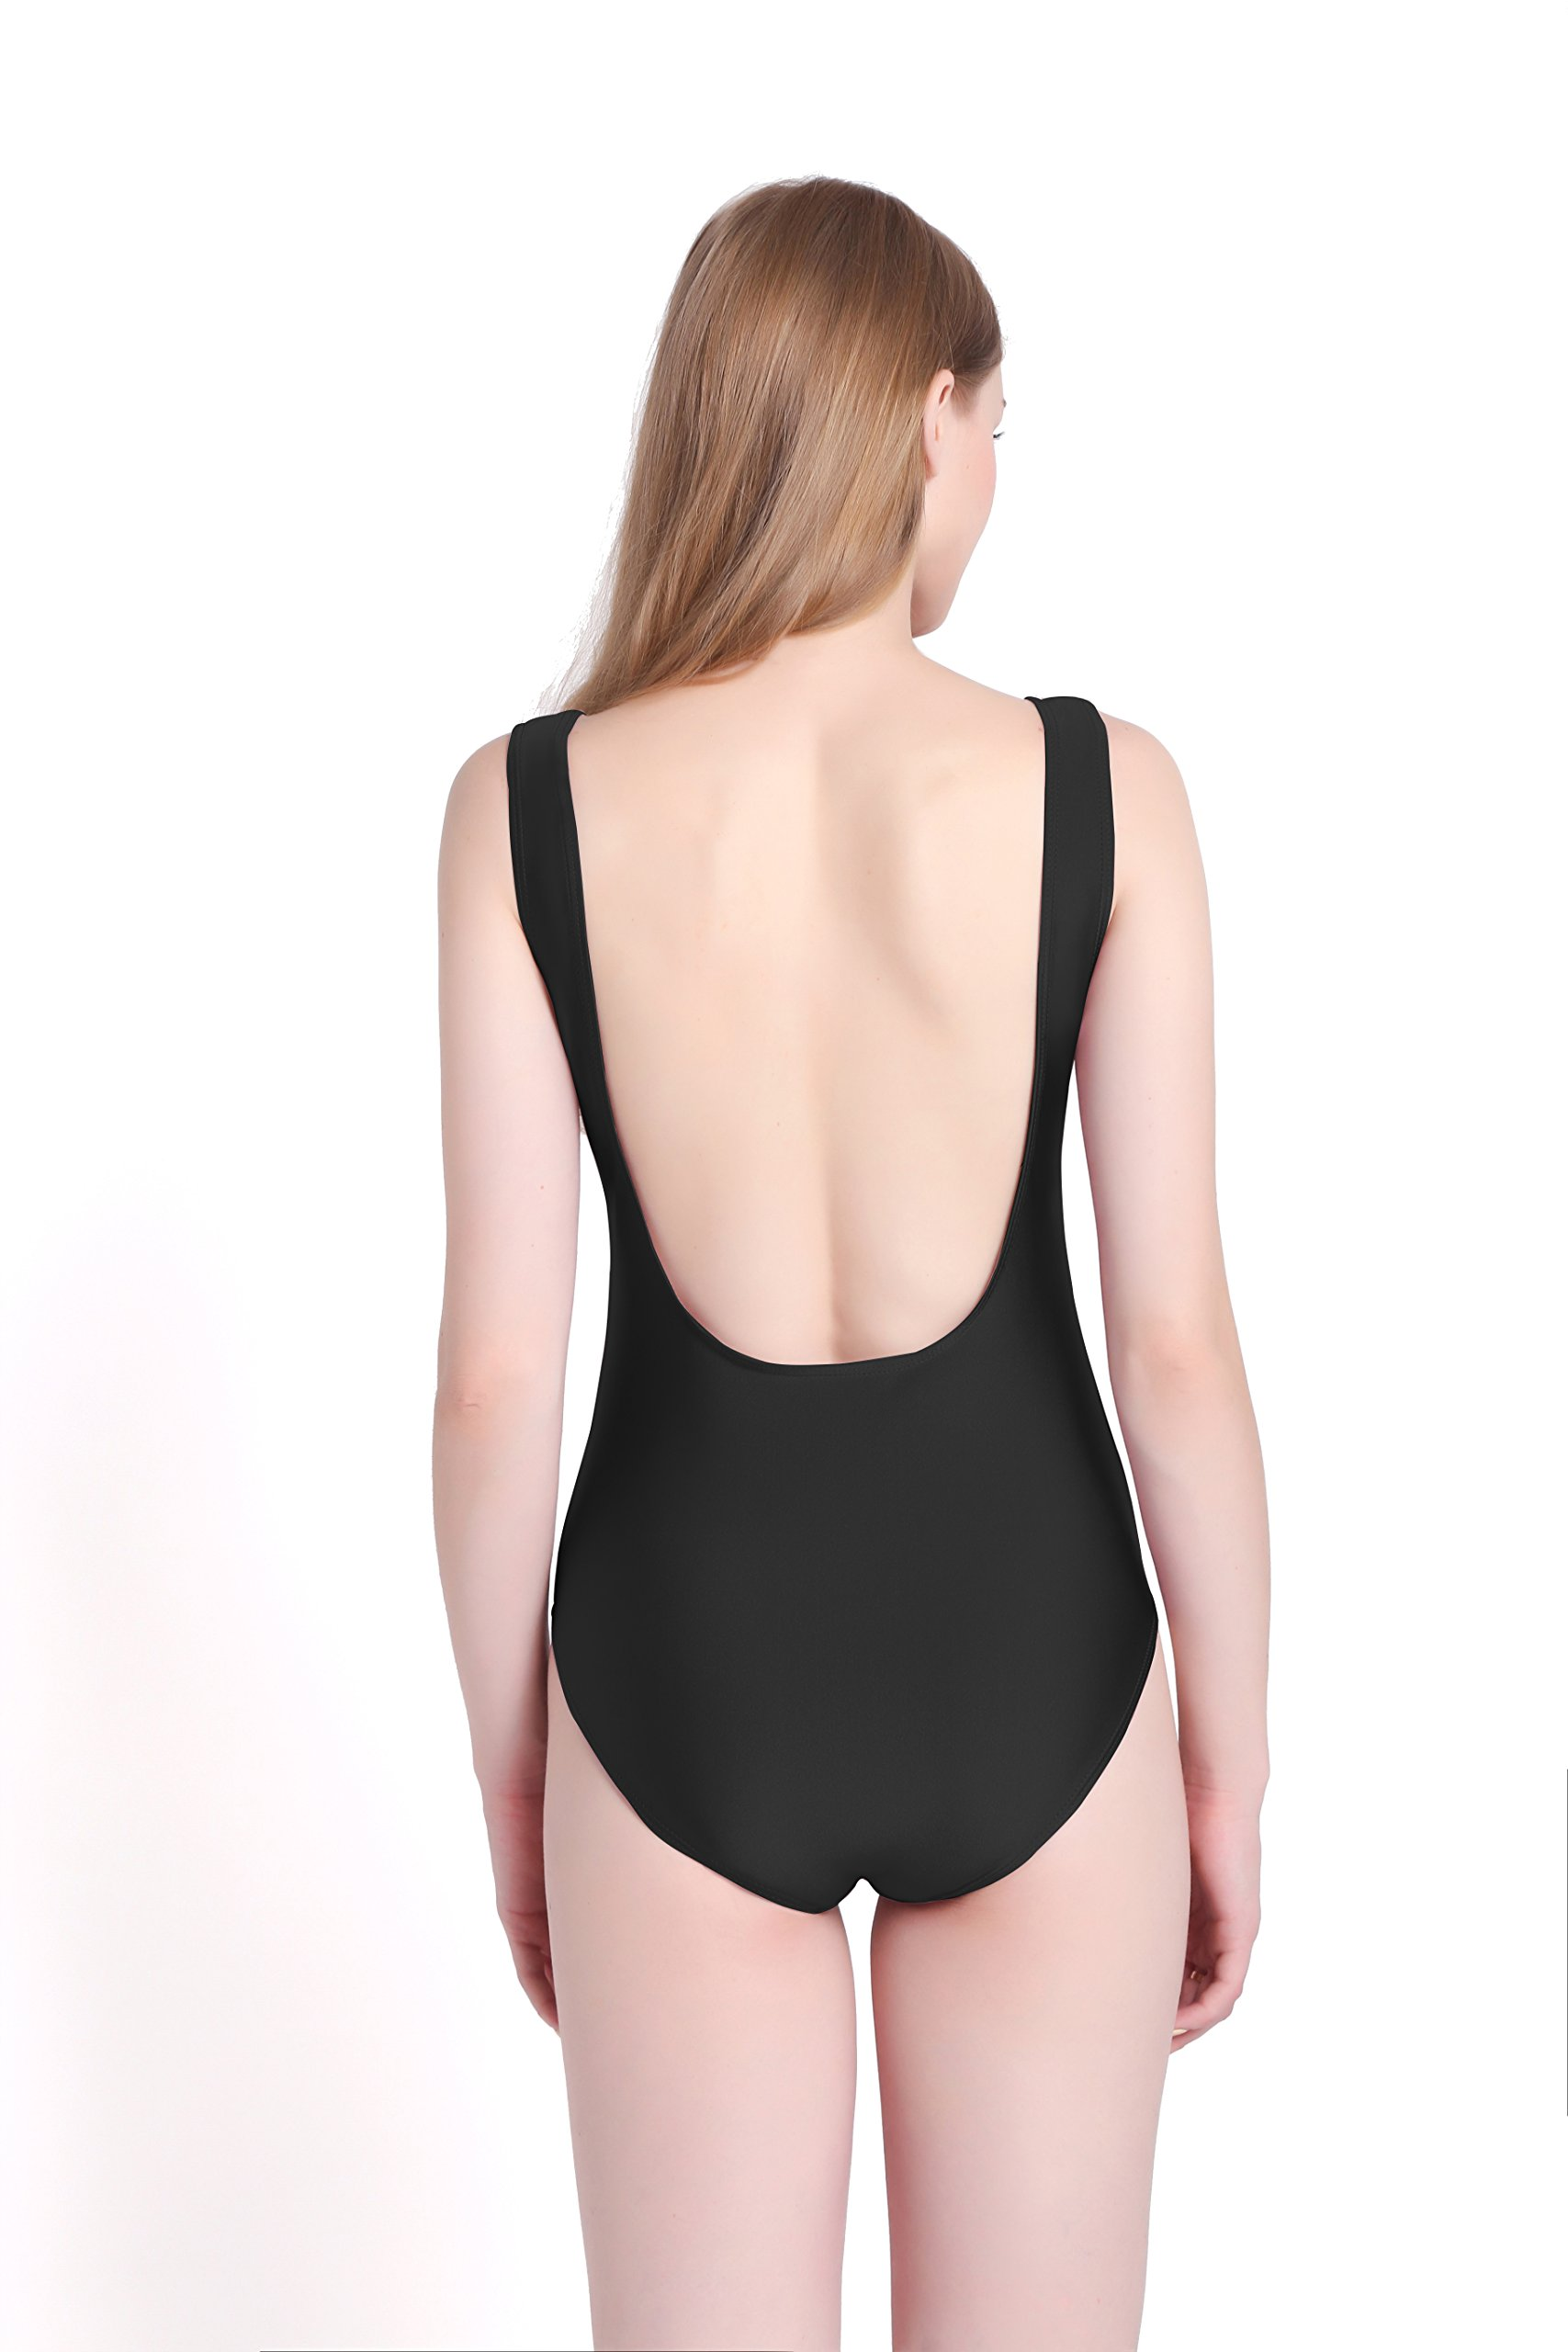 PINJIA Sexy Cute One Piece Swimsuit With High Cut and Low Back Monokini Bikini For Women(MX03) (S, Black Island Vibes)